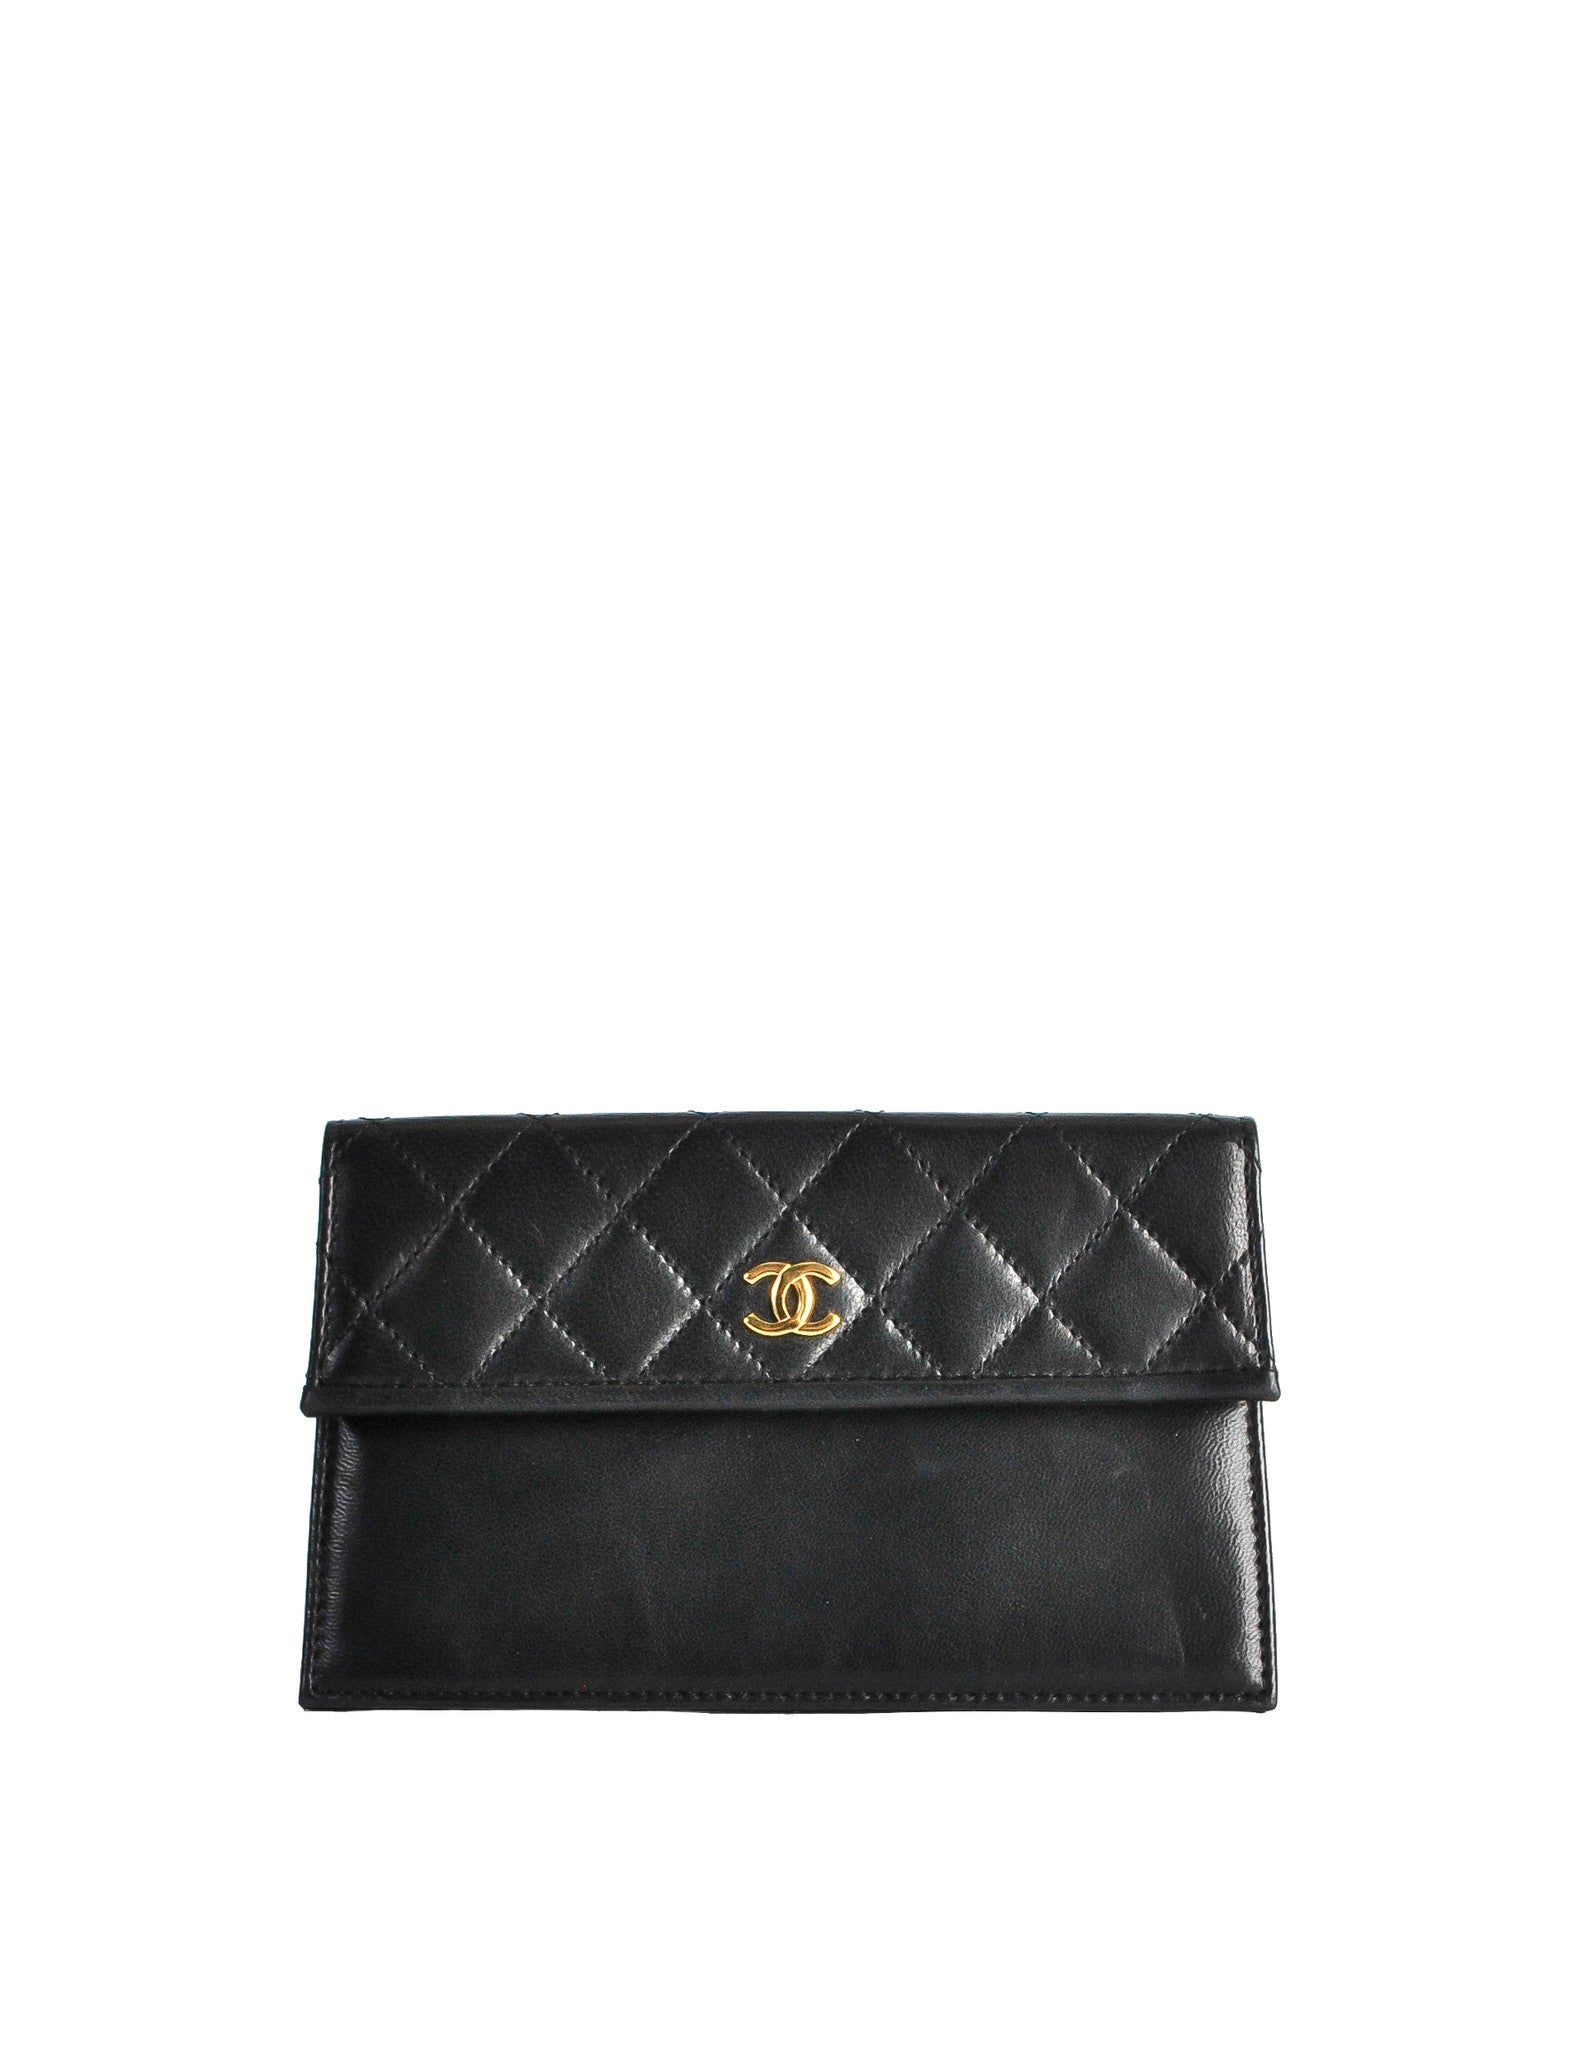 Chanel Vintage Black Quilted Lambskin Pouch - Amarcord Vintage Fashion  - 1